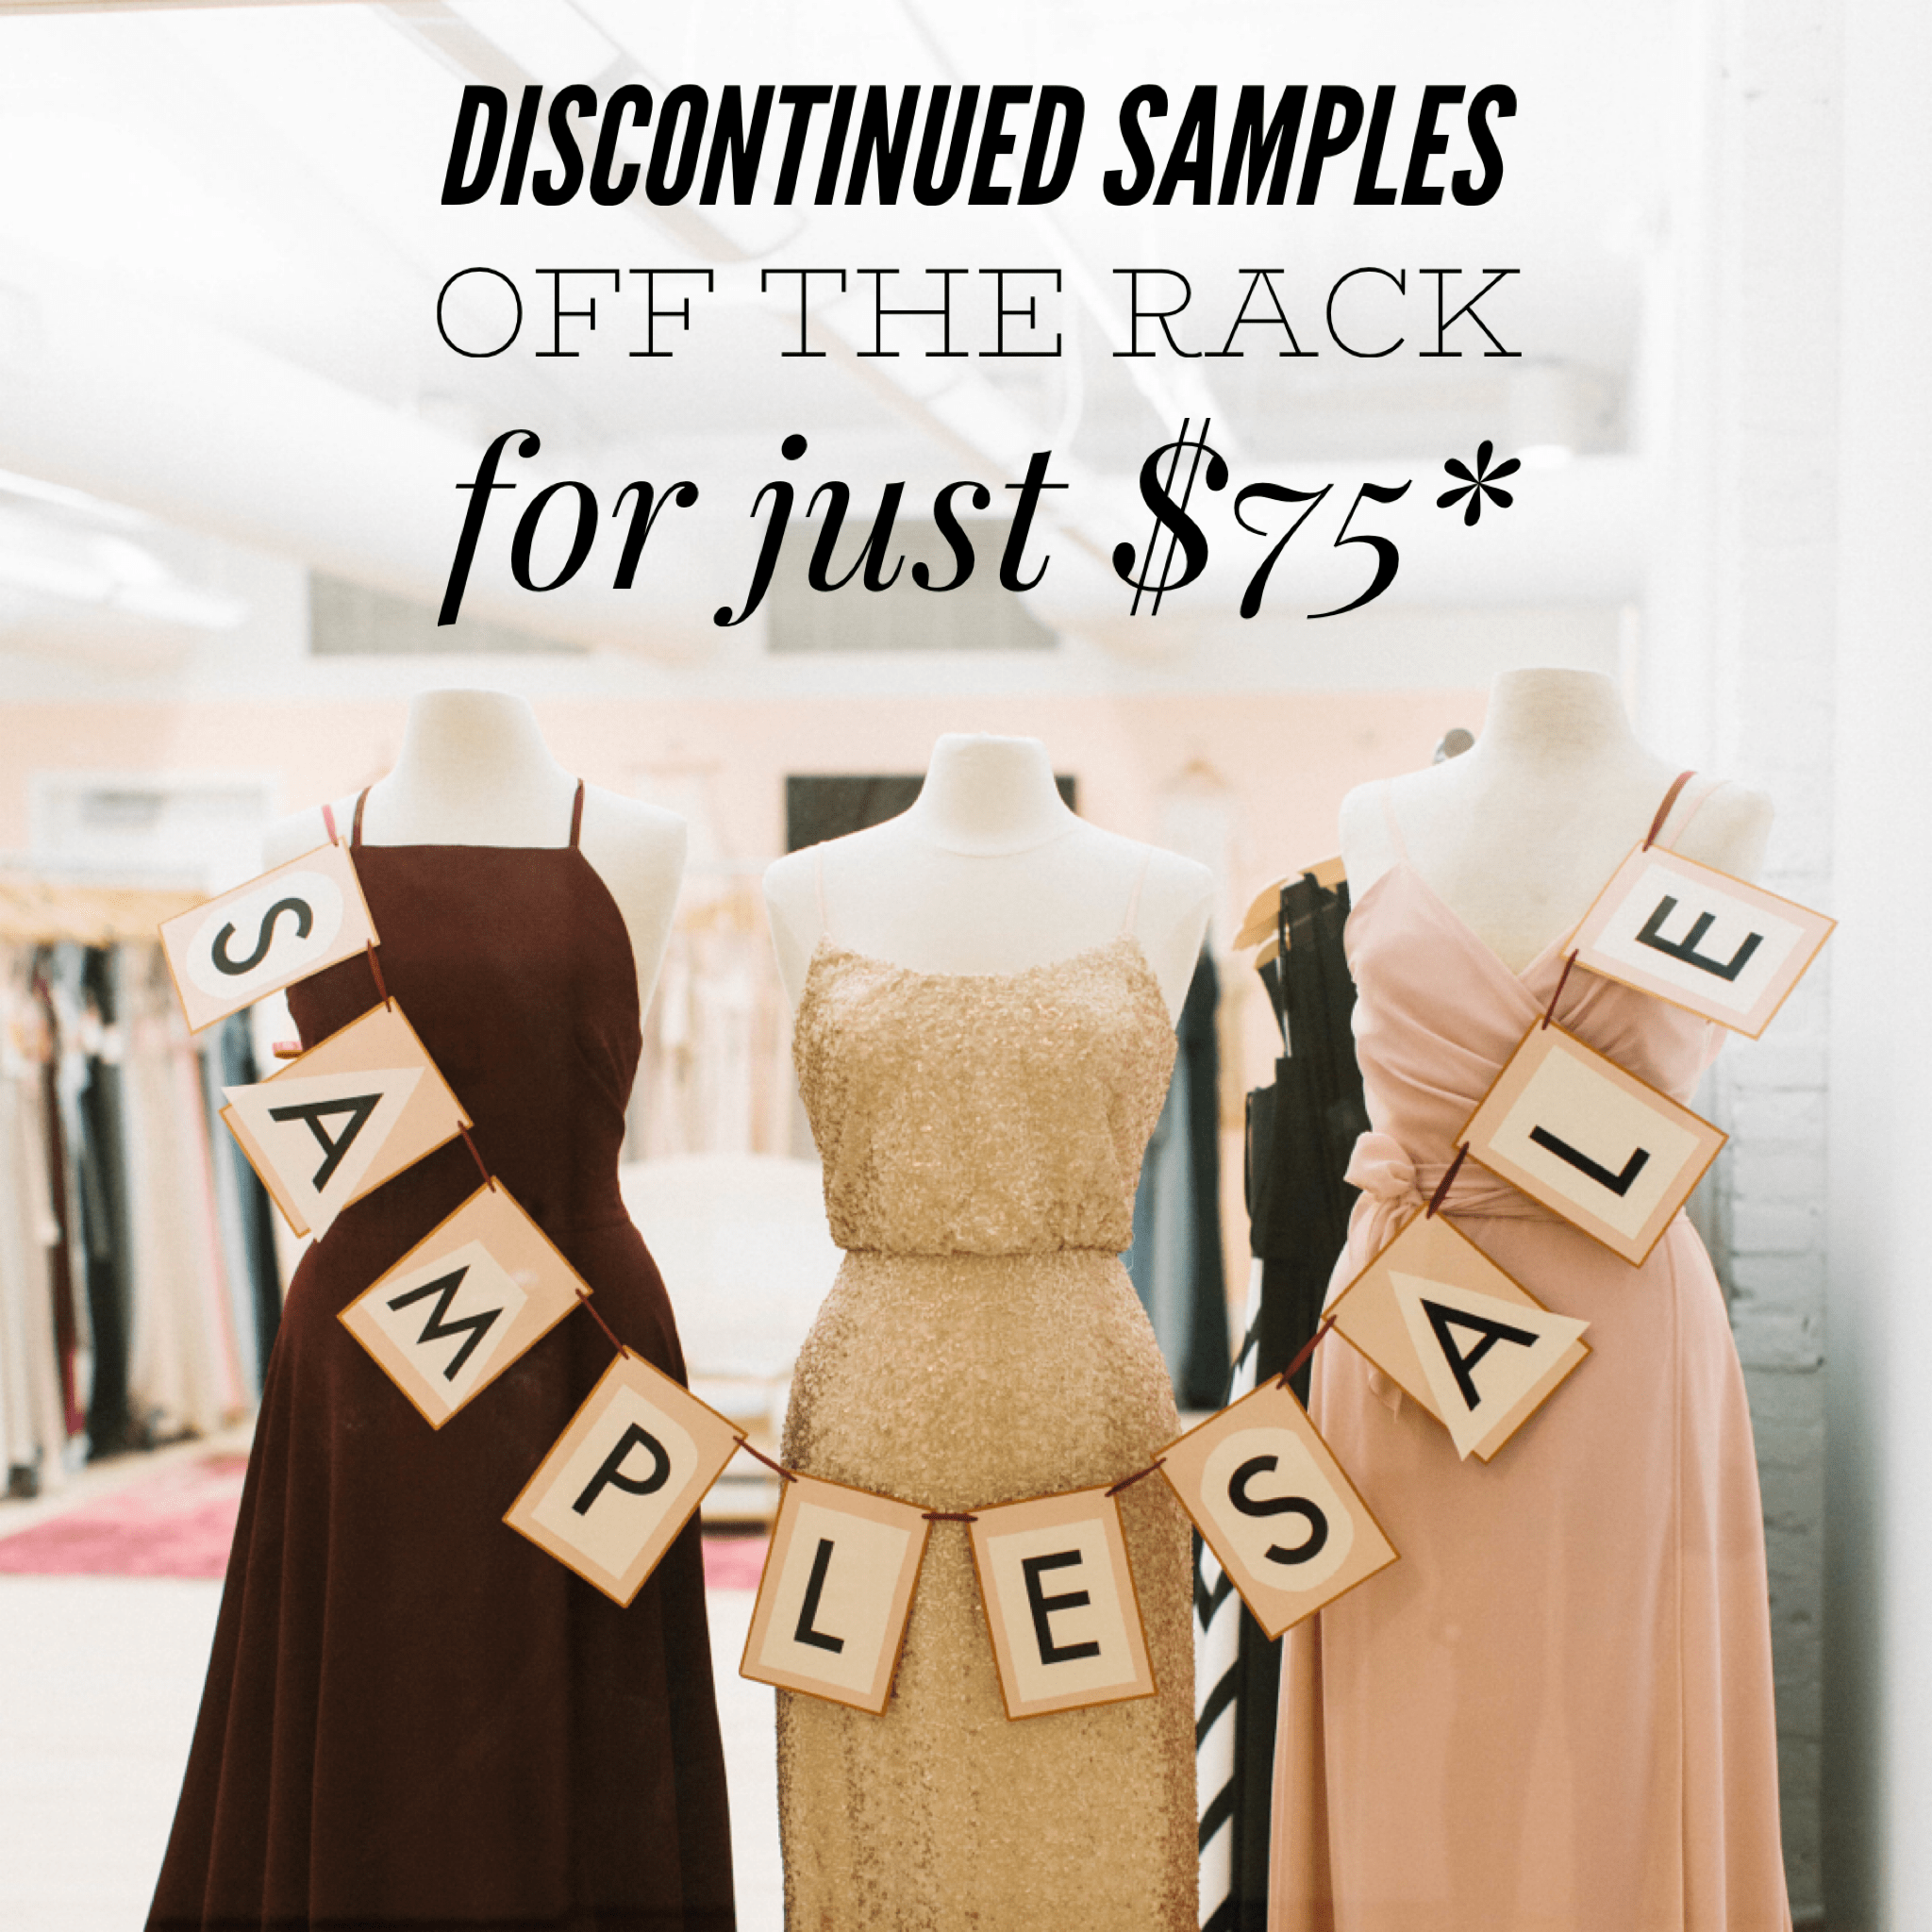 Purchase discontinued sample dresses from Gilded Social off the rack for $75